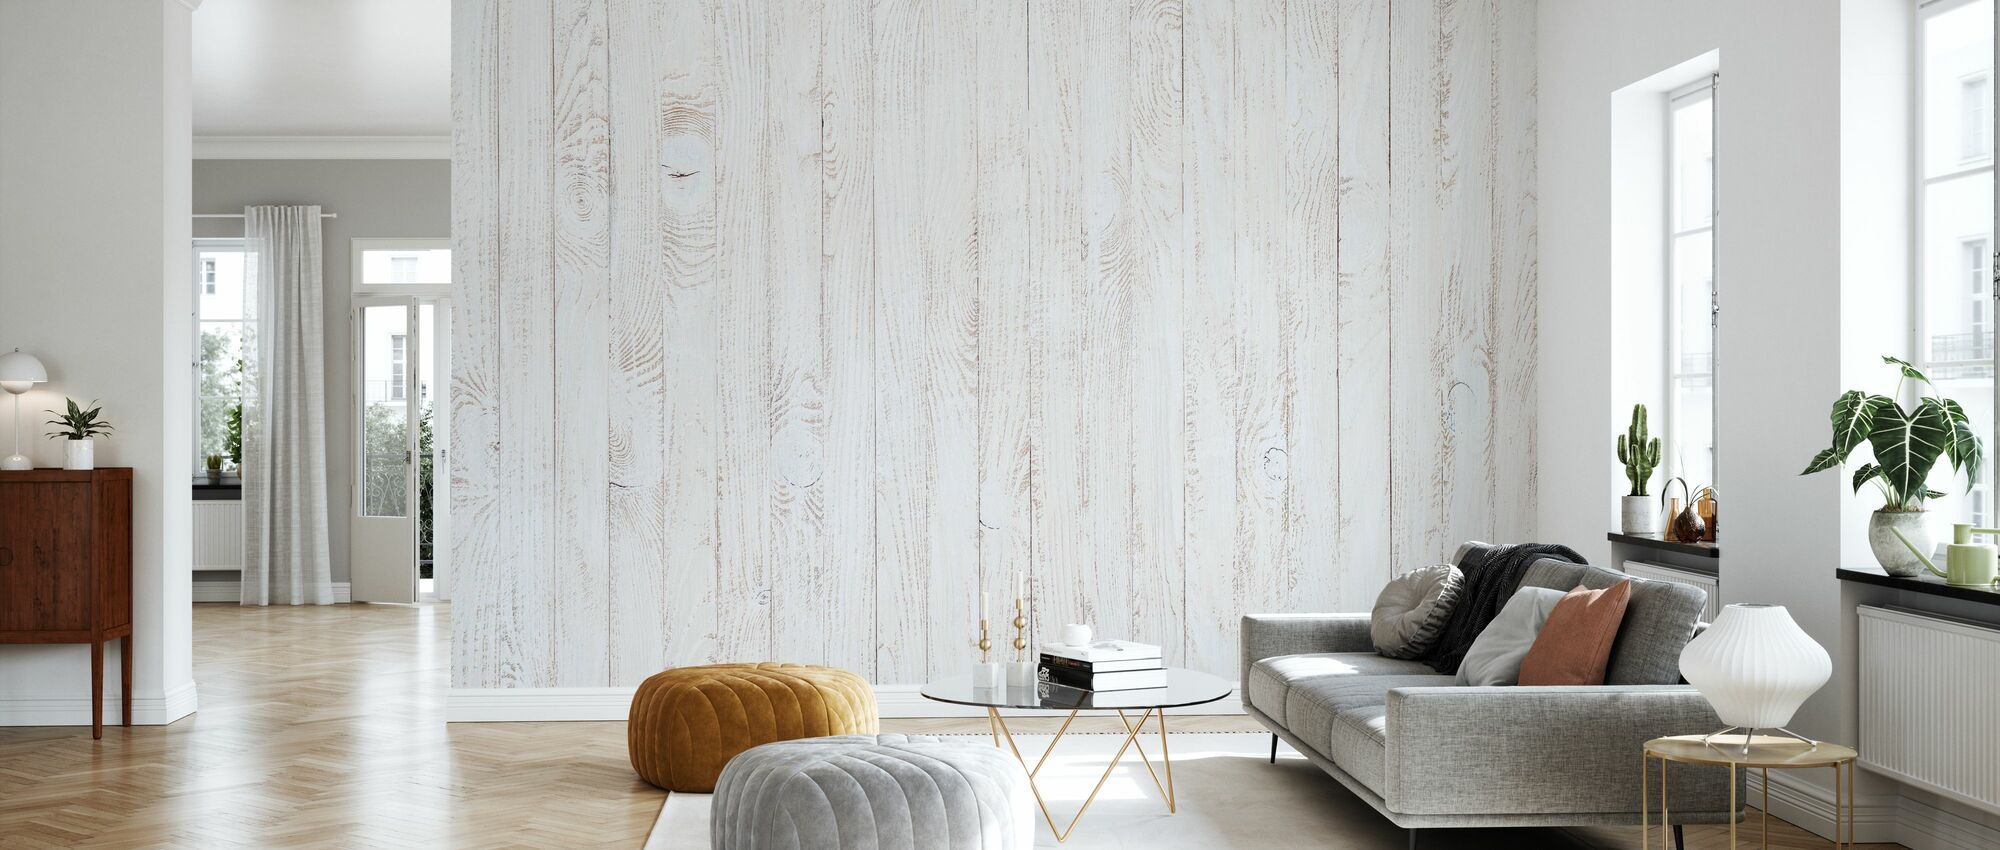 White Stained Wooden Panel - Wallpaper - Living Room